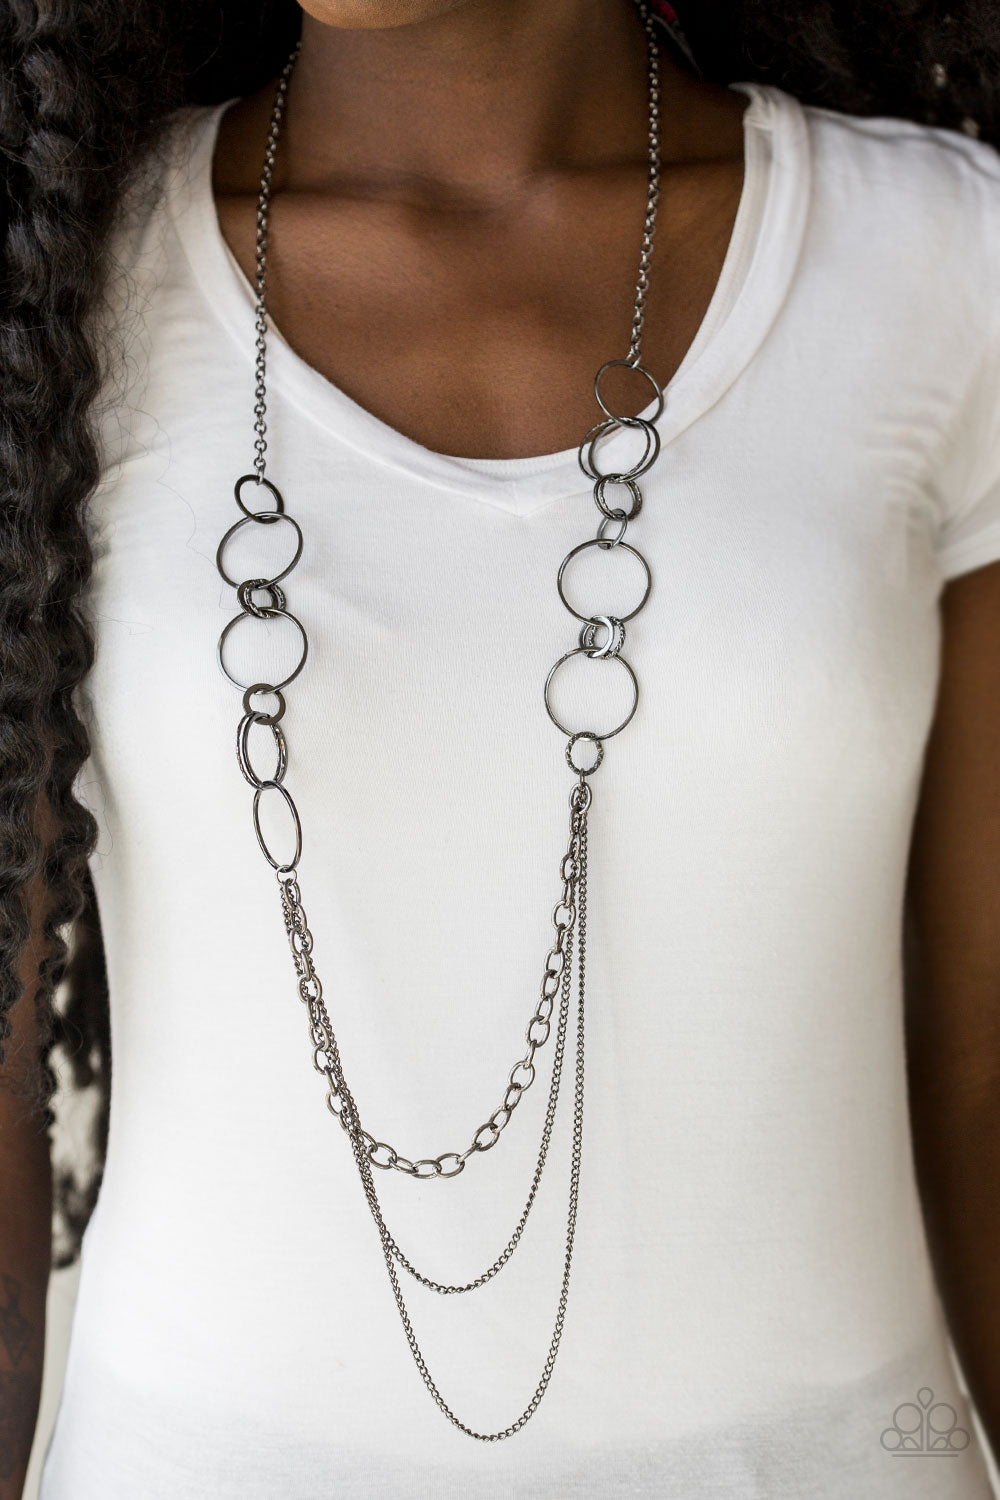 Ring Down the house - black - Paparazzi necklace